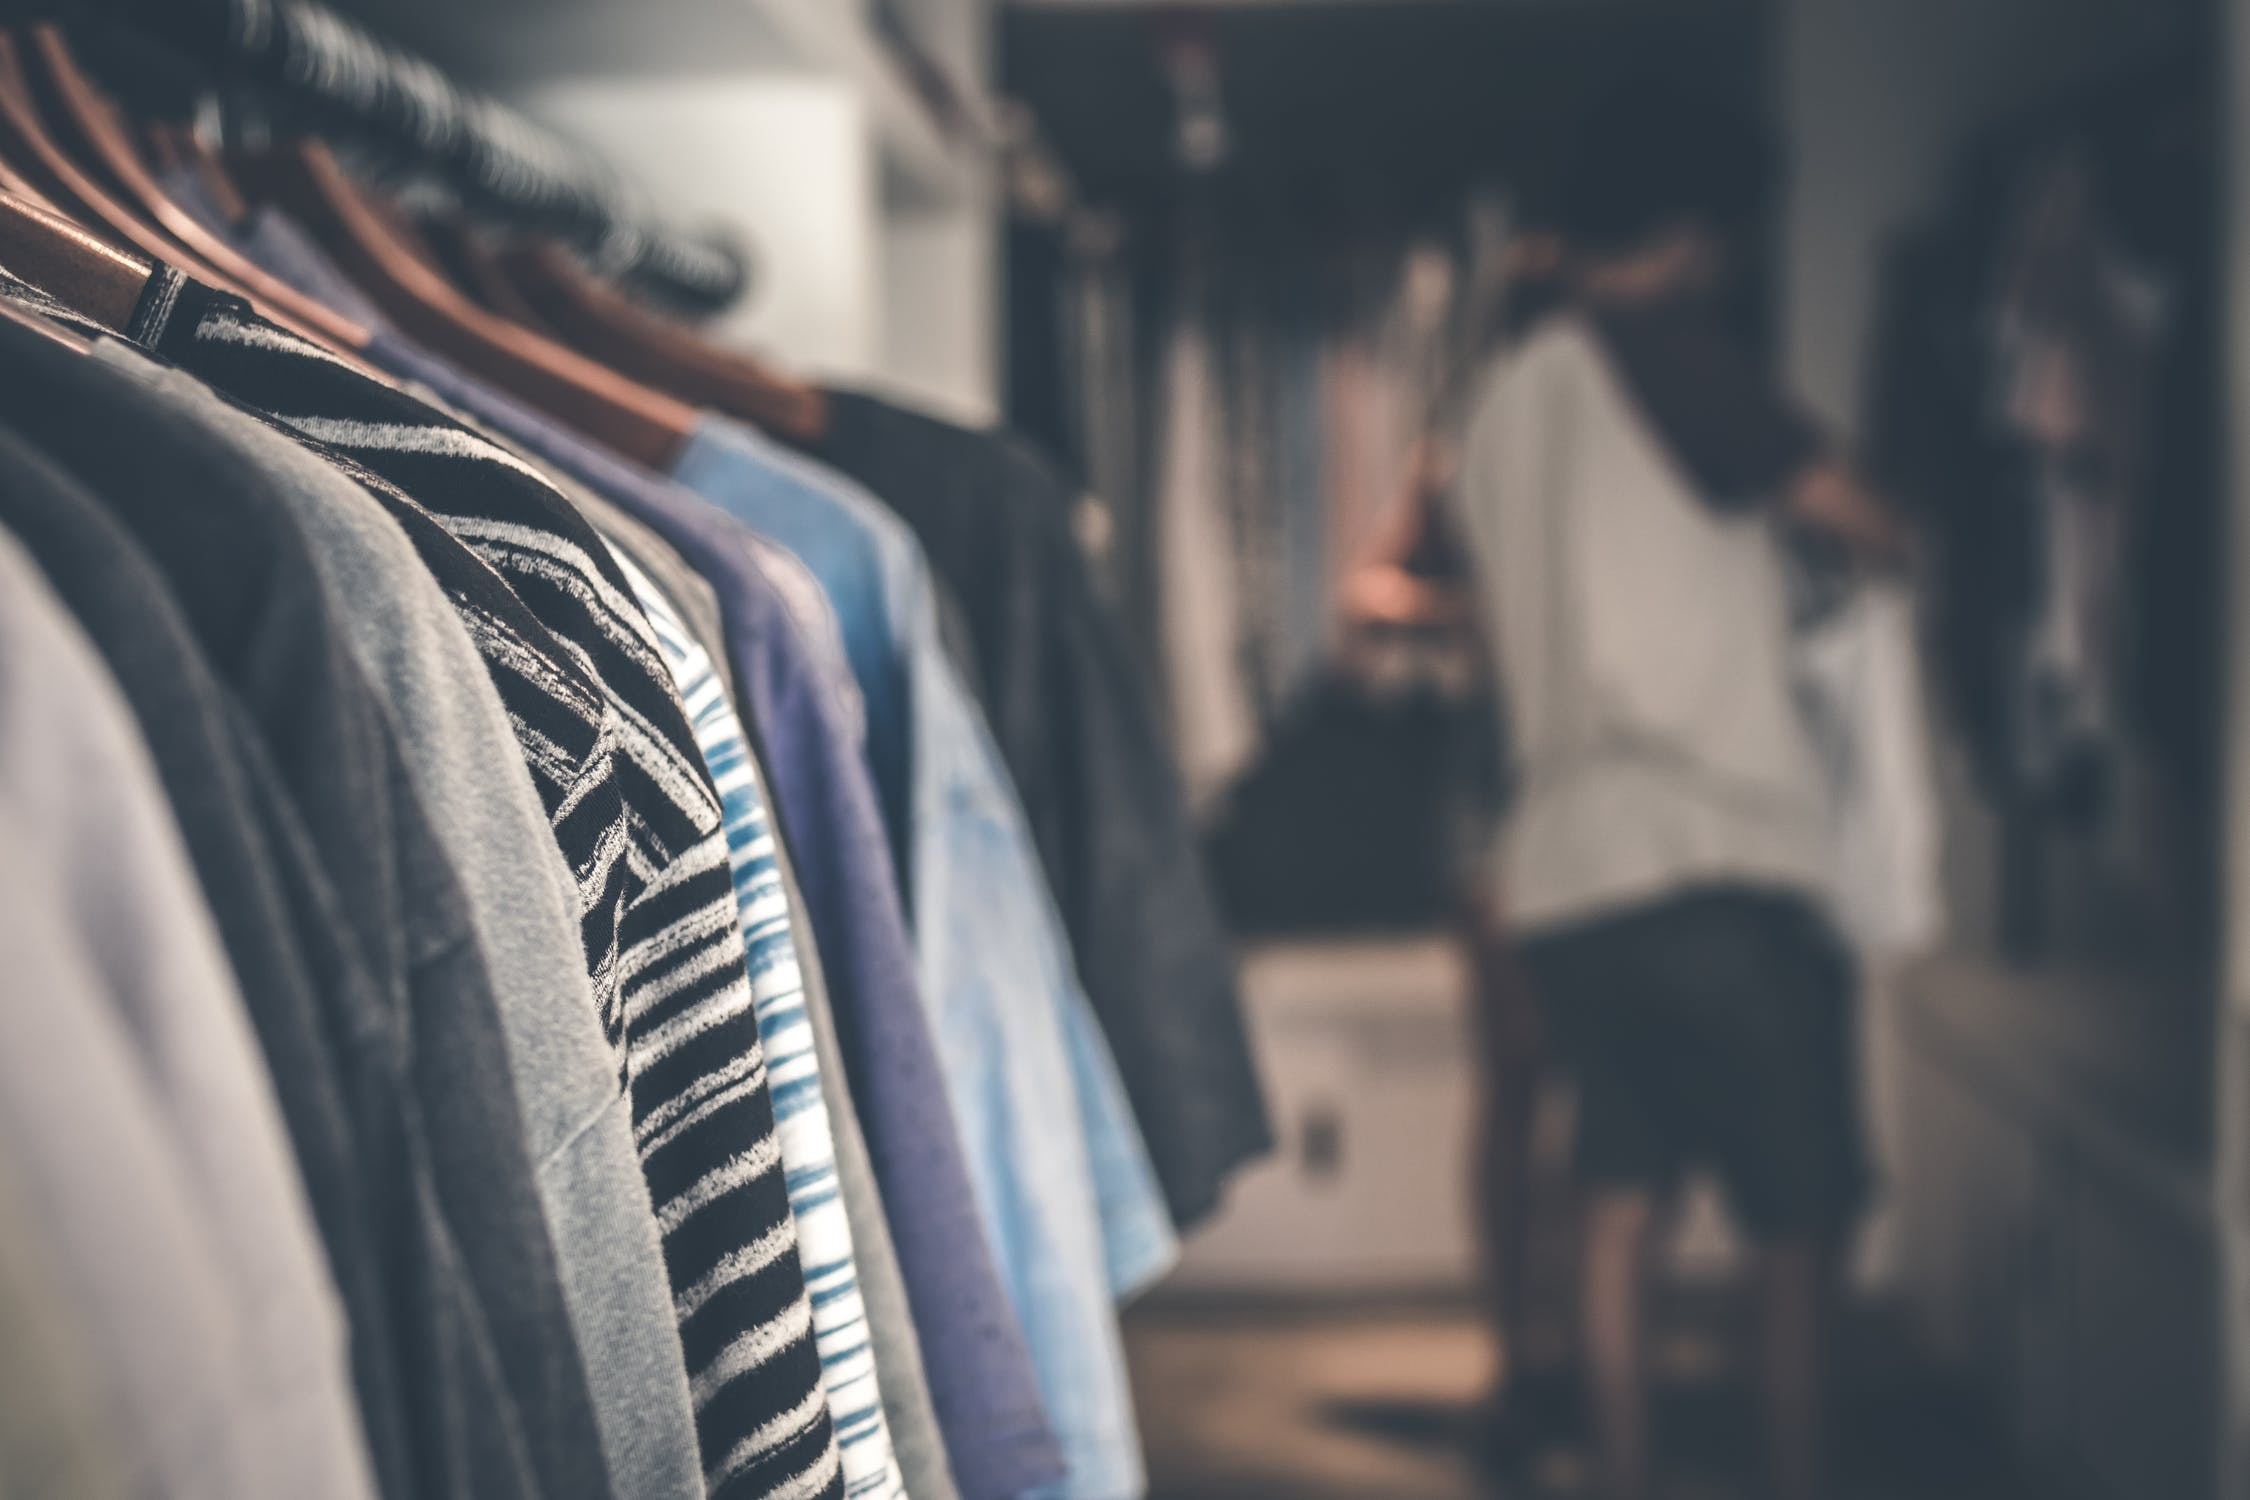 clothing at a thrift shop